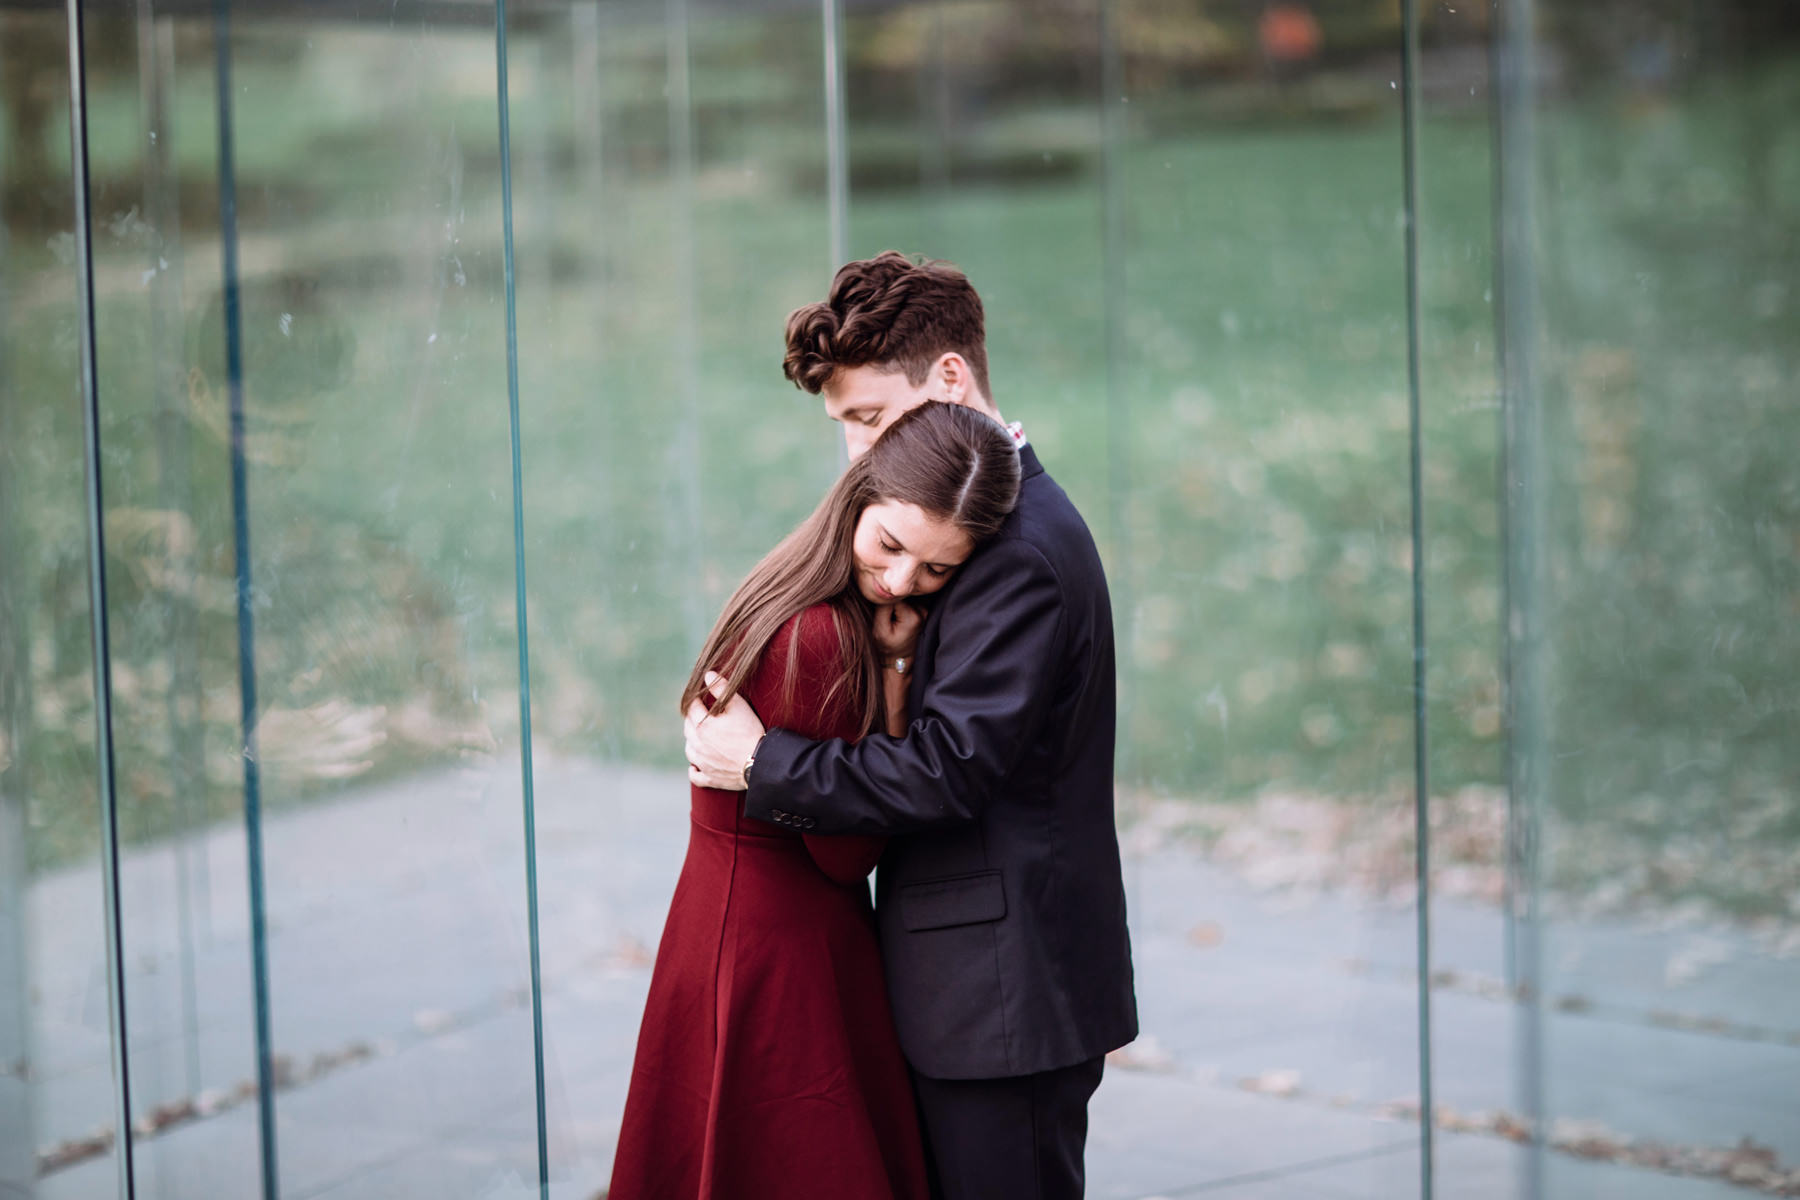 Nelson-Atkins Museum Engagmentshoot_Kansas City_Kindling Wedding Photography (Blog)47.JPG